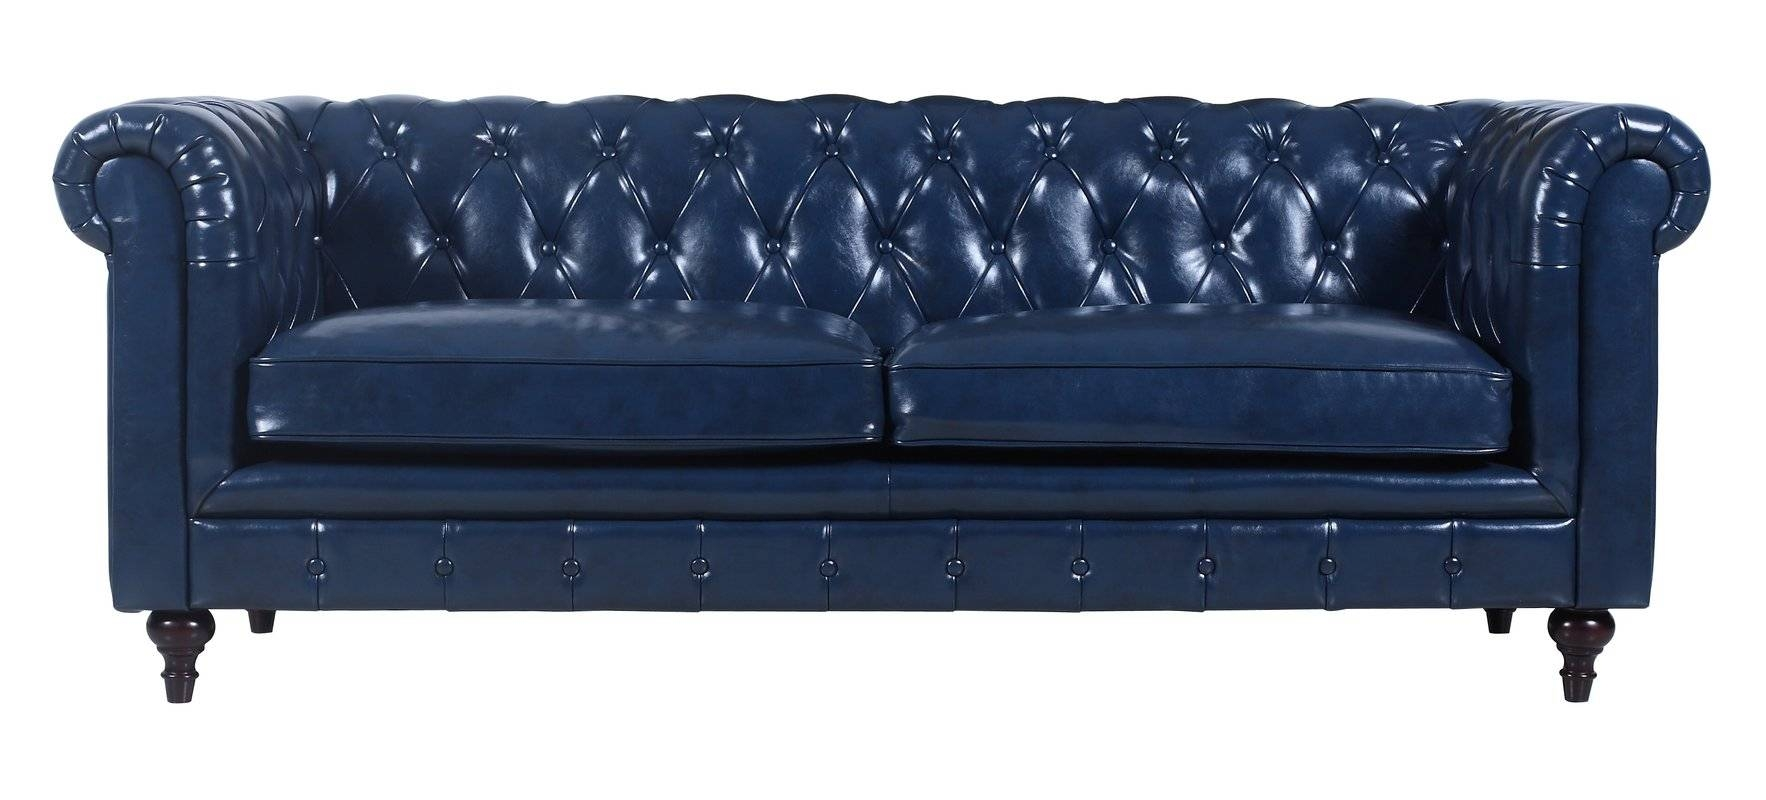 Madison Home Usa Tufted Leather Chesterfield Sofa & Reviews | Wayfair pertaining to Tufted Leather Chesterfield Sofas (Image 16 of 30)